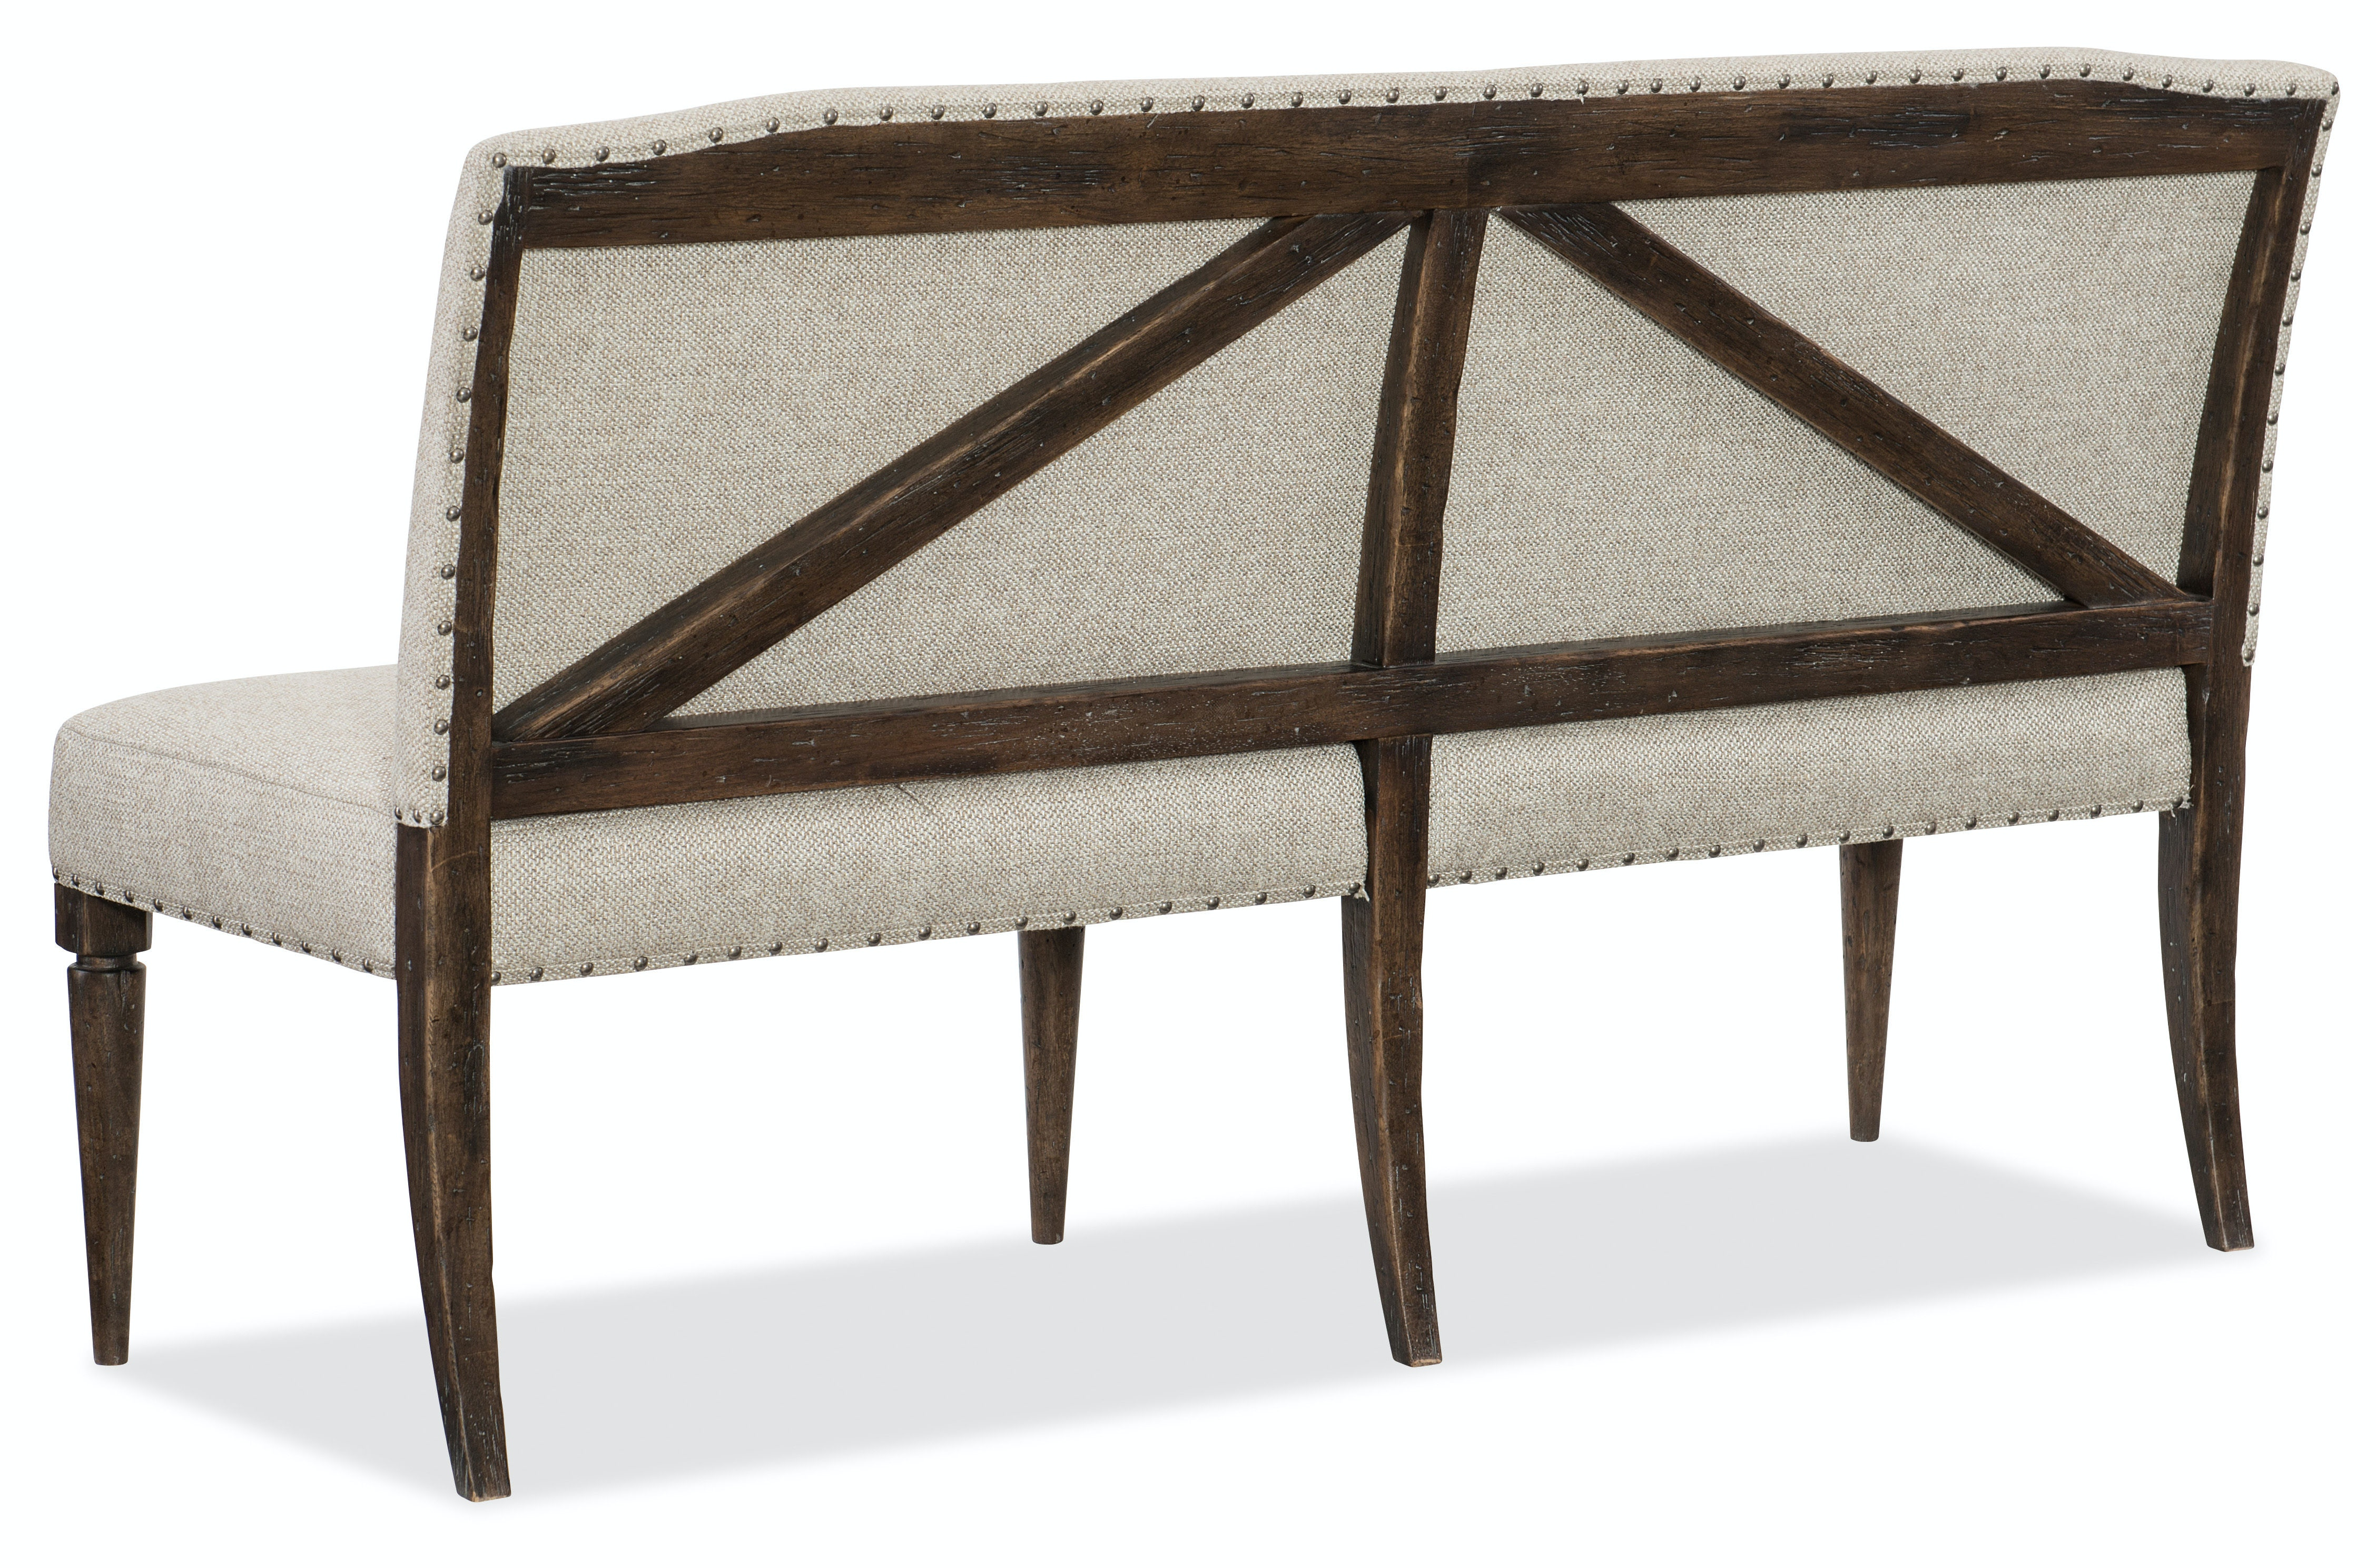 Bon Hooker Furniture Roslyn County Upholstered Dining Bench HS161875019DKW From  Walter E. Smithe Furniture + Design